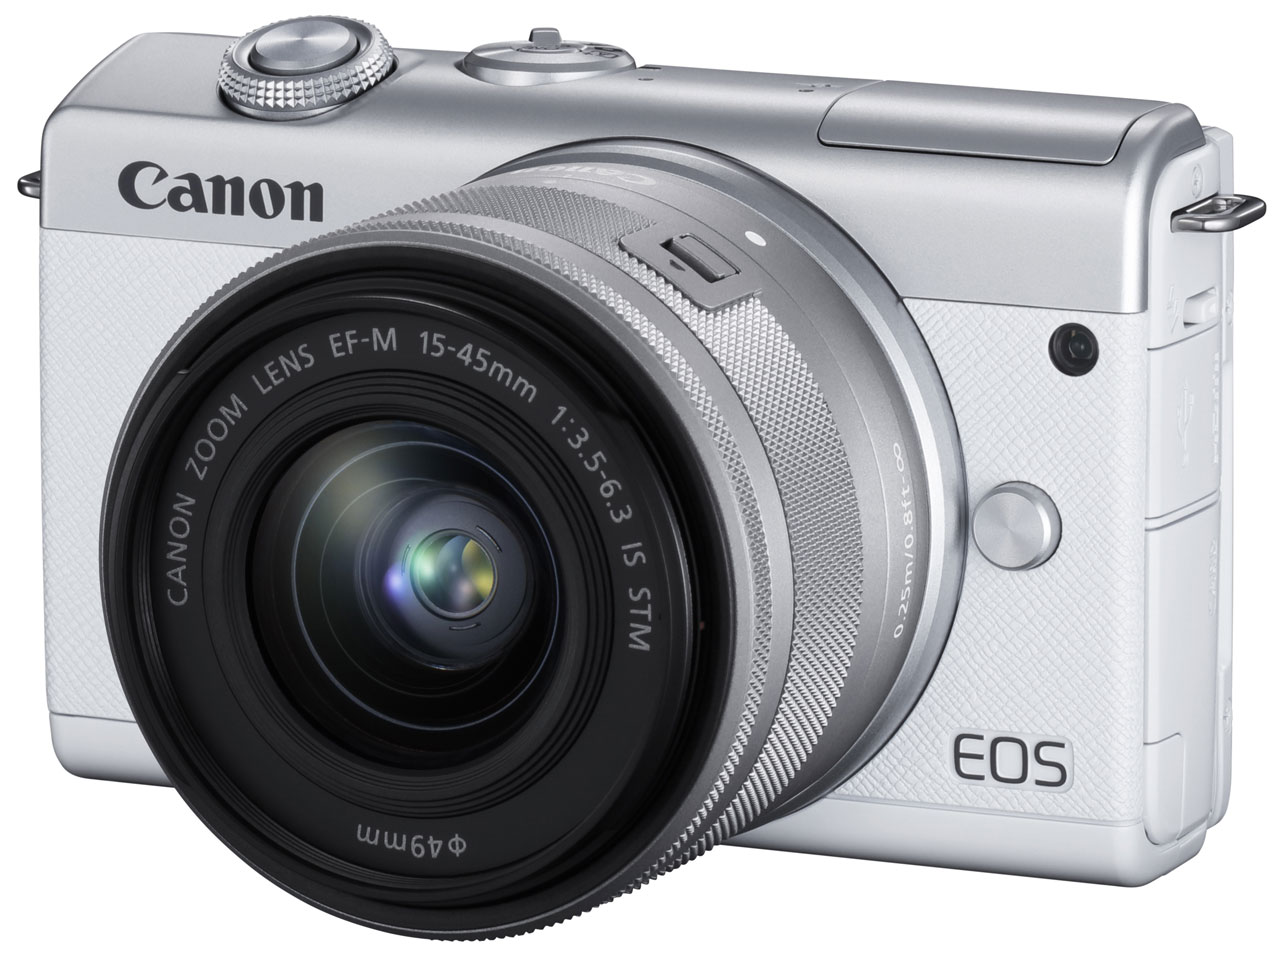 CANON EOS M200 EF-M15-45 IS STM レンズキット [ホワイト]【お取り寄せ(メーカー取り寄せ/予約受付中)】※1~2ヶ月